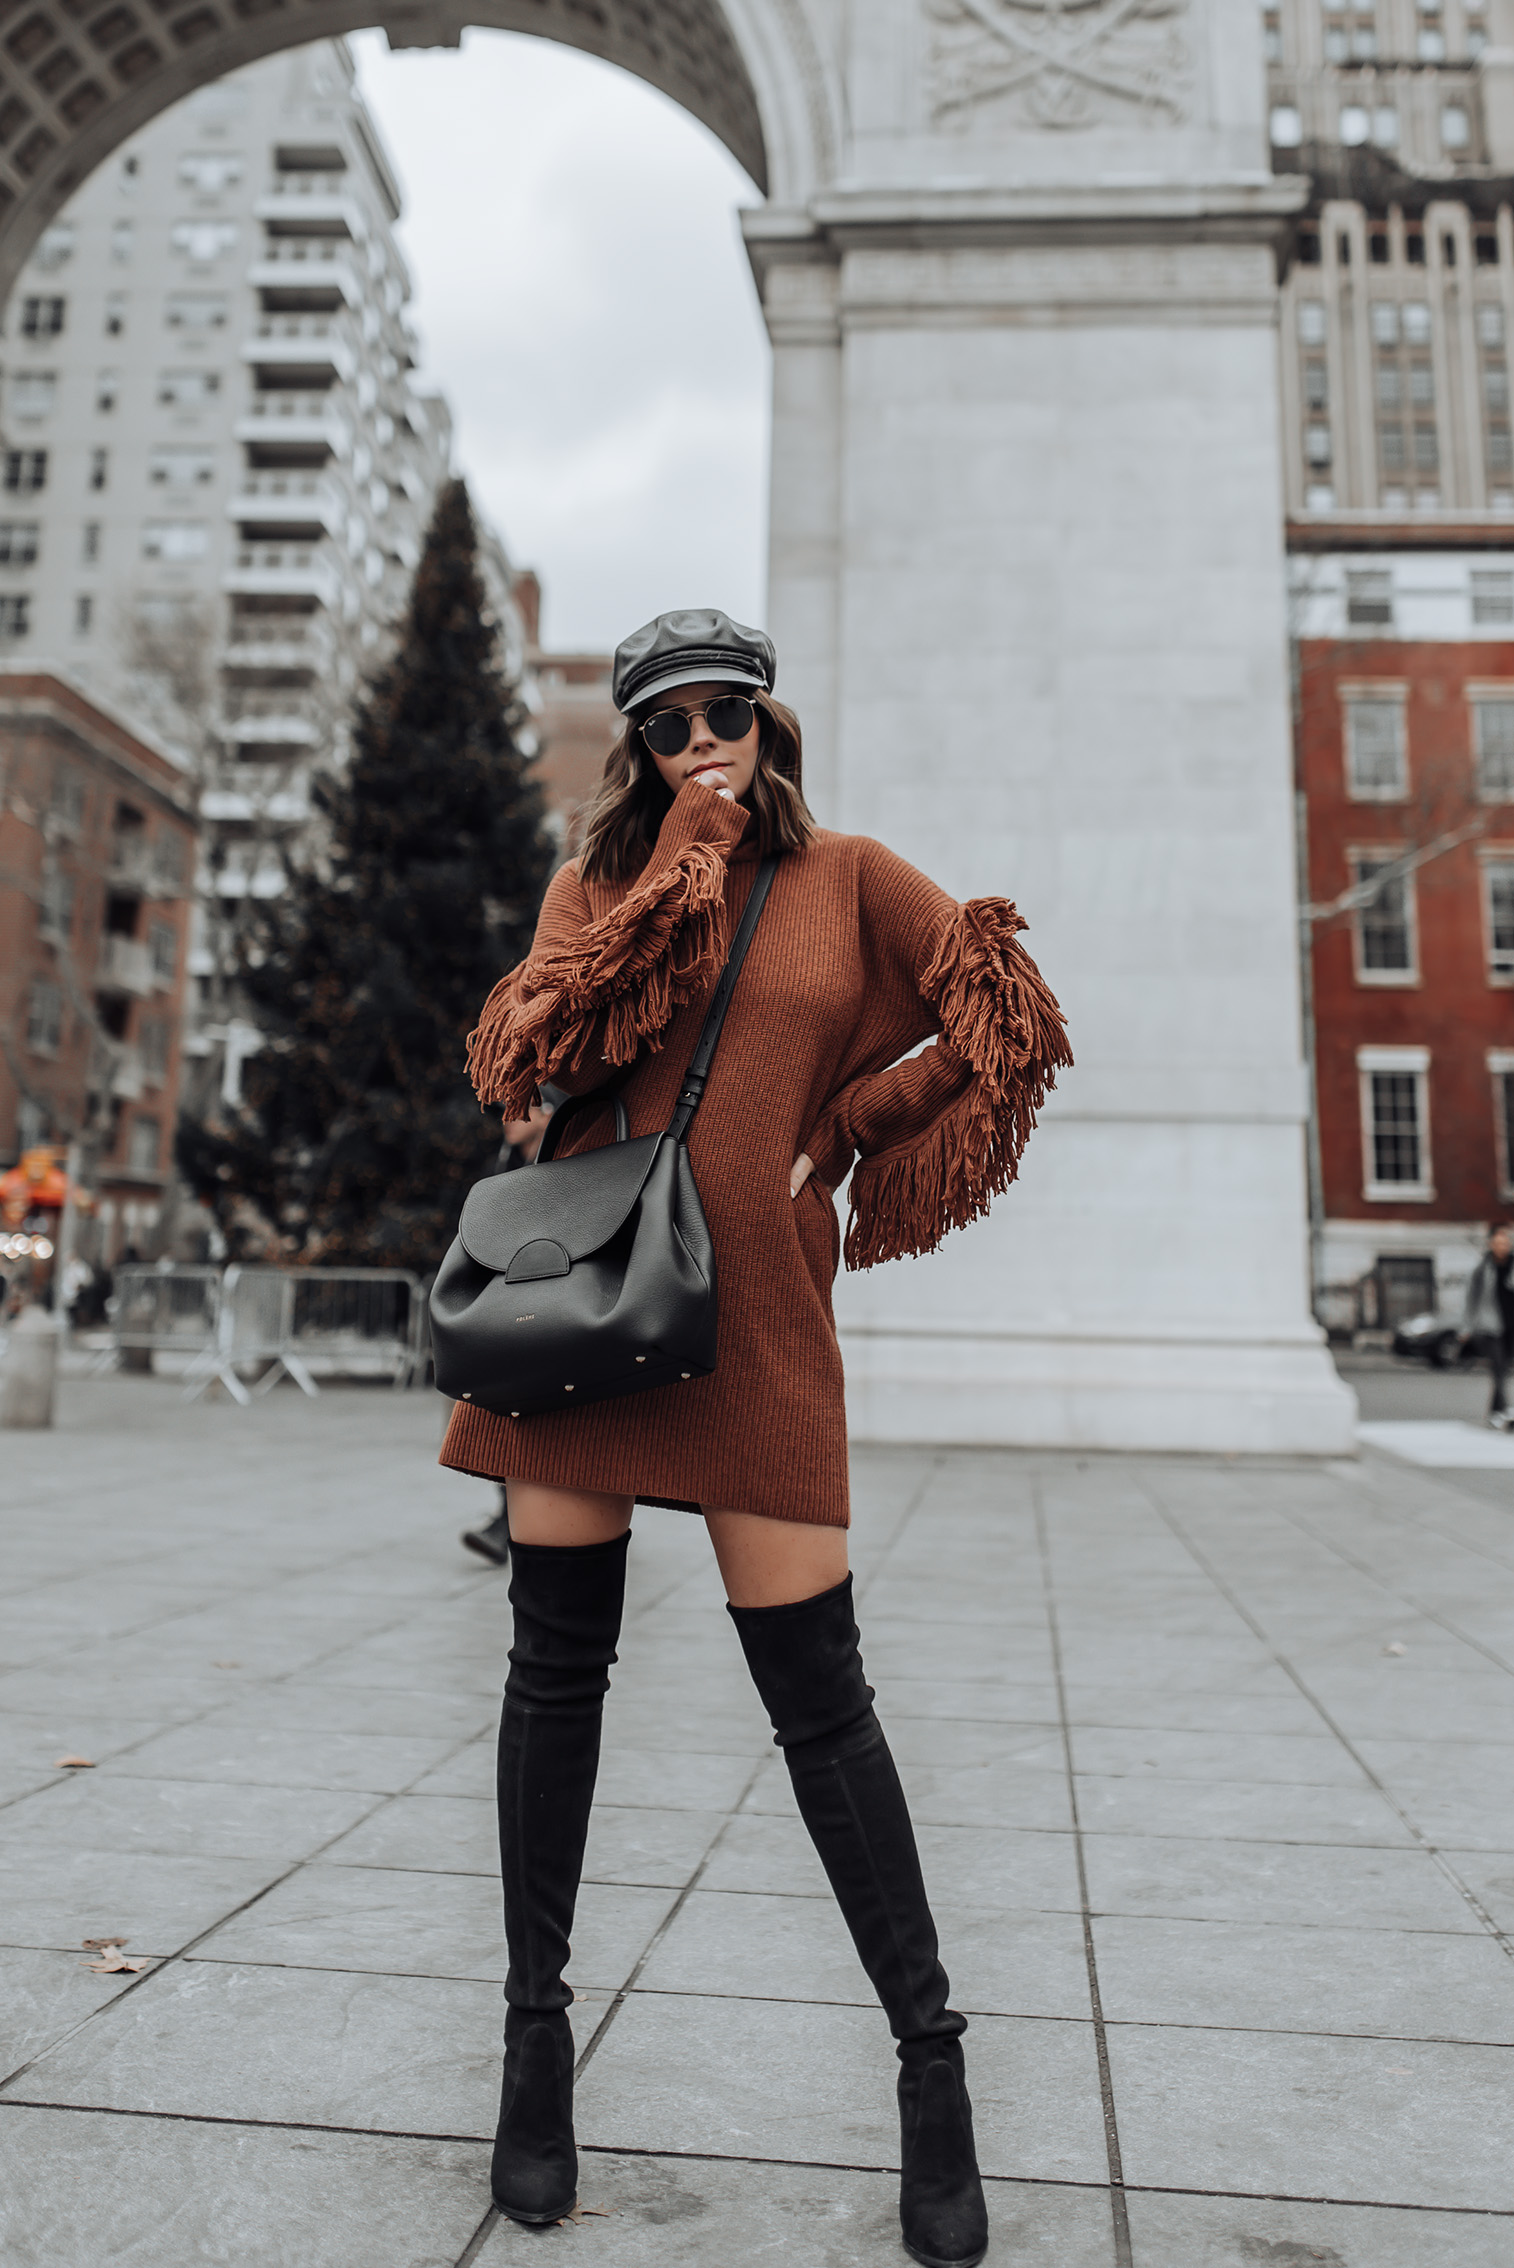 Tiffany Jais fashion and lifestyle blogger of Flaunt and Center | NYC fashion blogger | Fringe sweater dress | Streetstyle blog #ootd #sweaterdress #streetstyle #minimalfashion